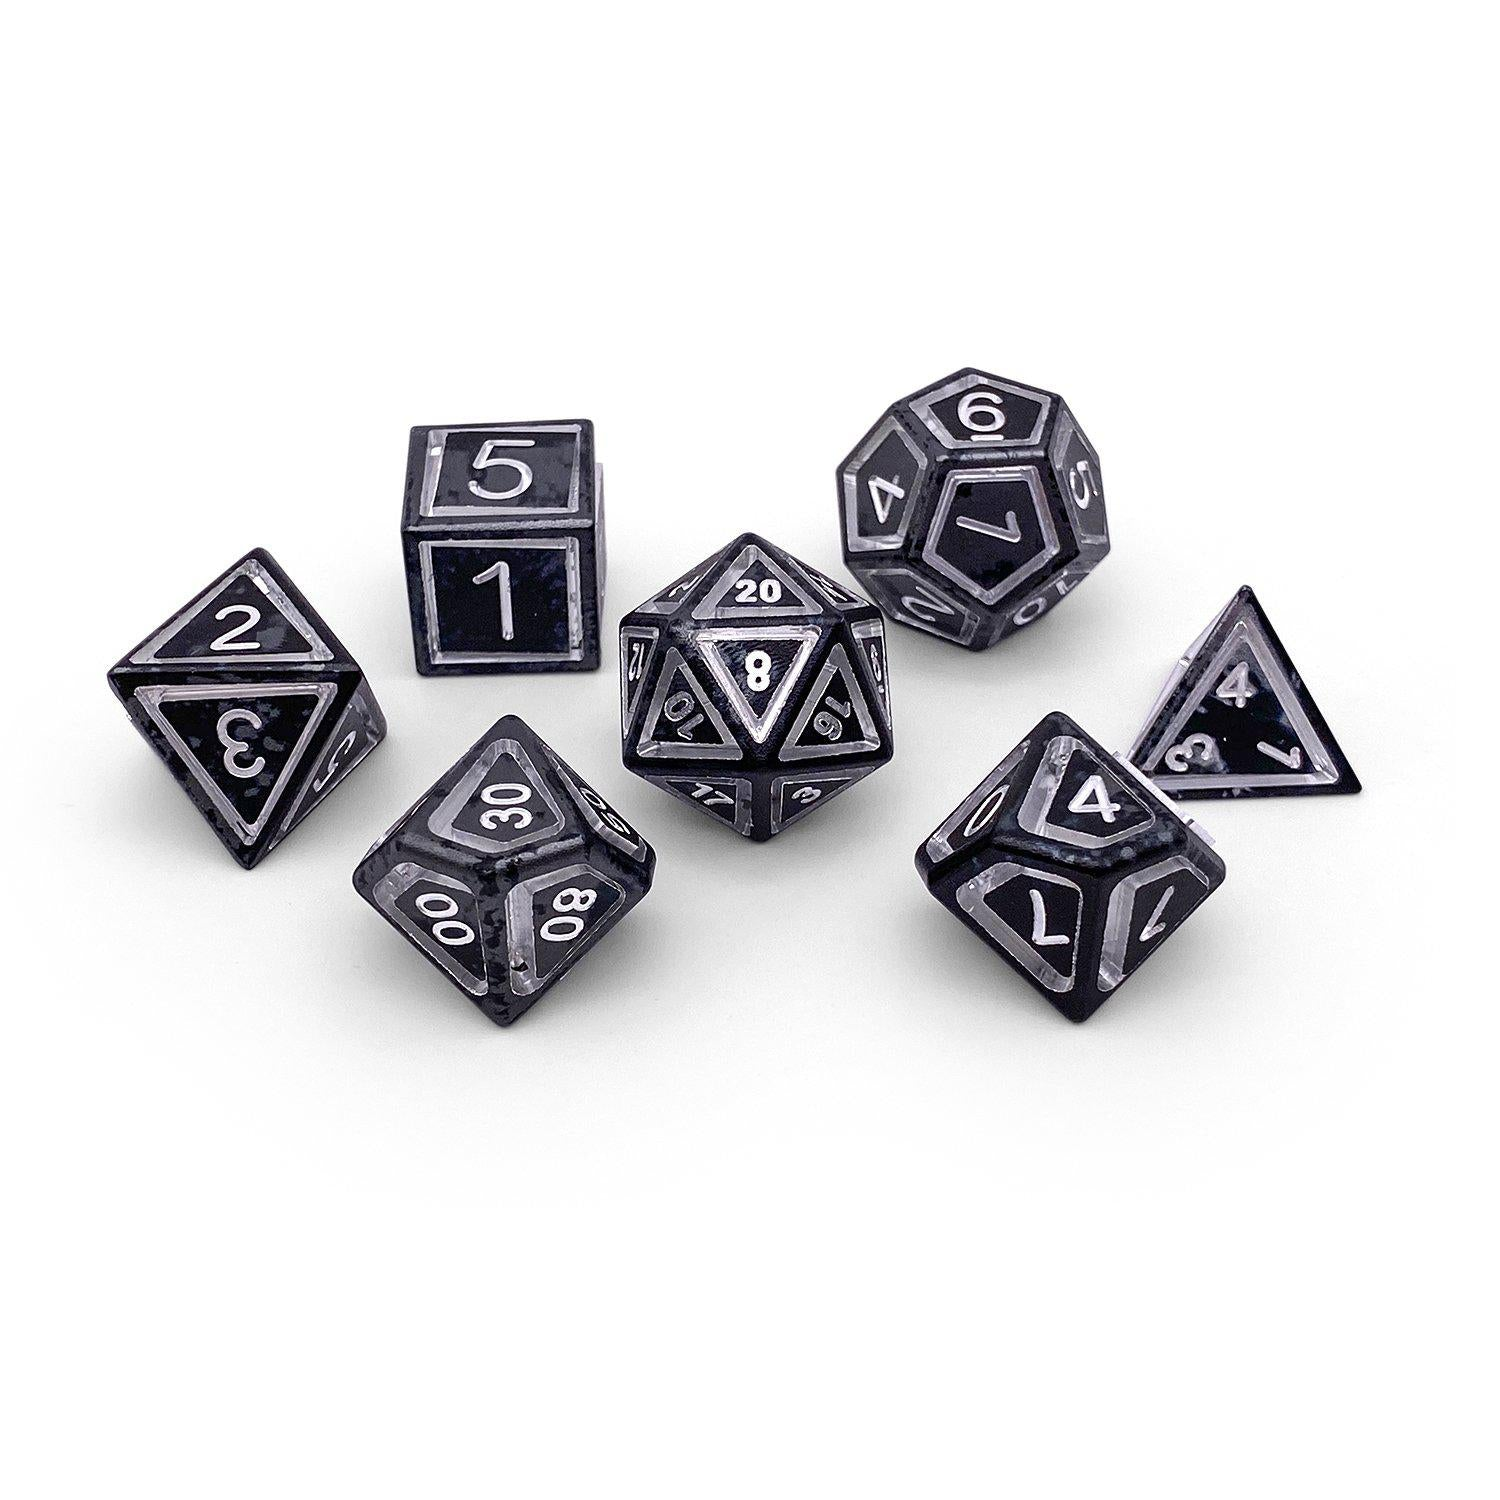 Nimbus Wondrous Precision CNC Aluminum Dice Set - Mummy Lord